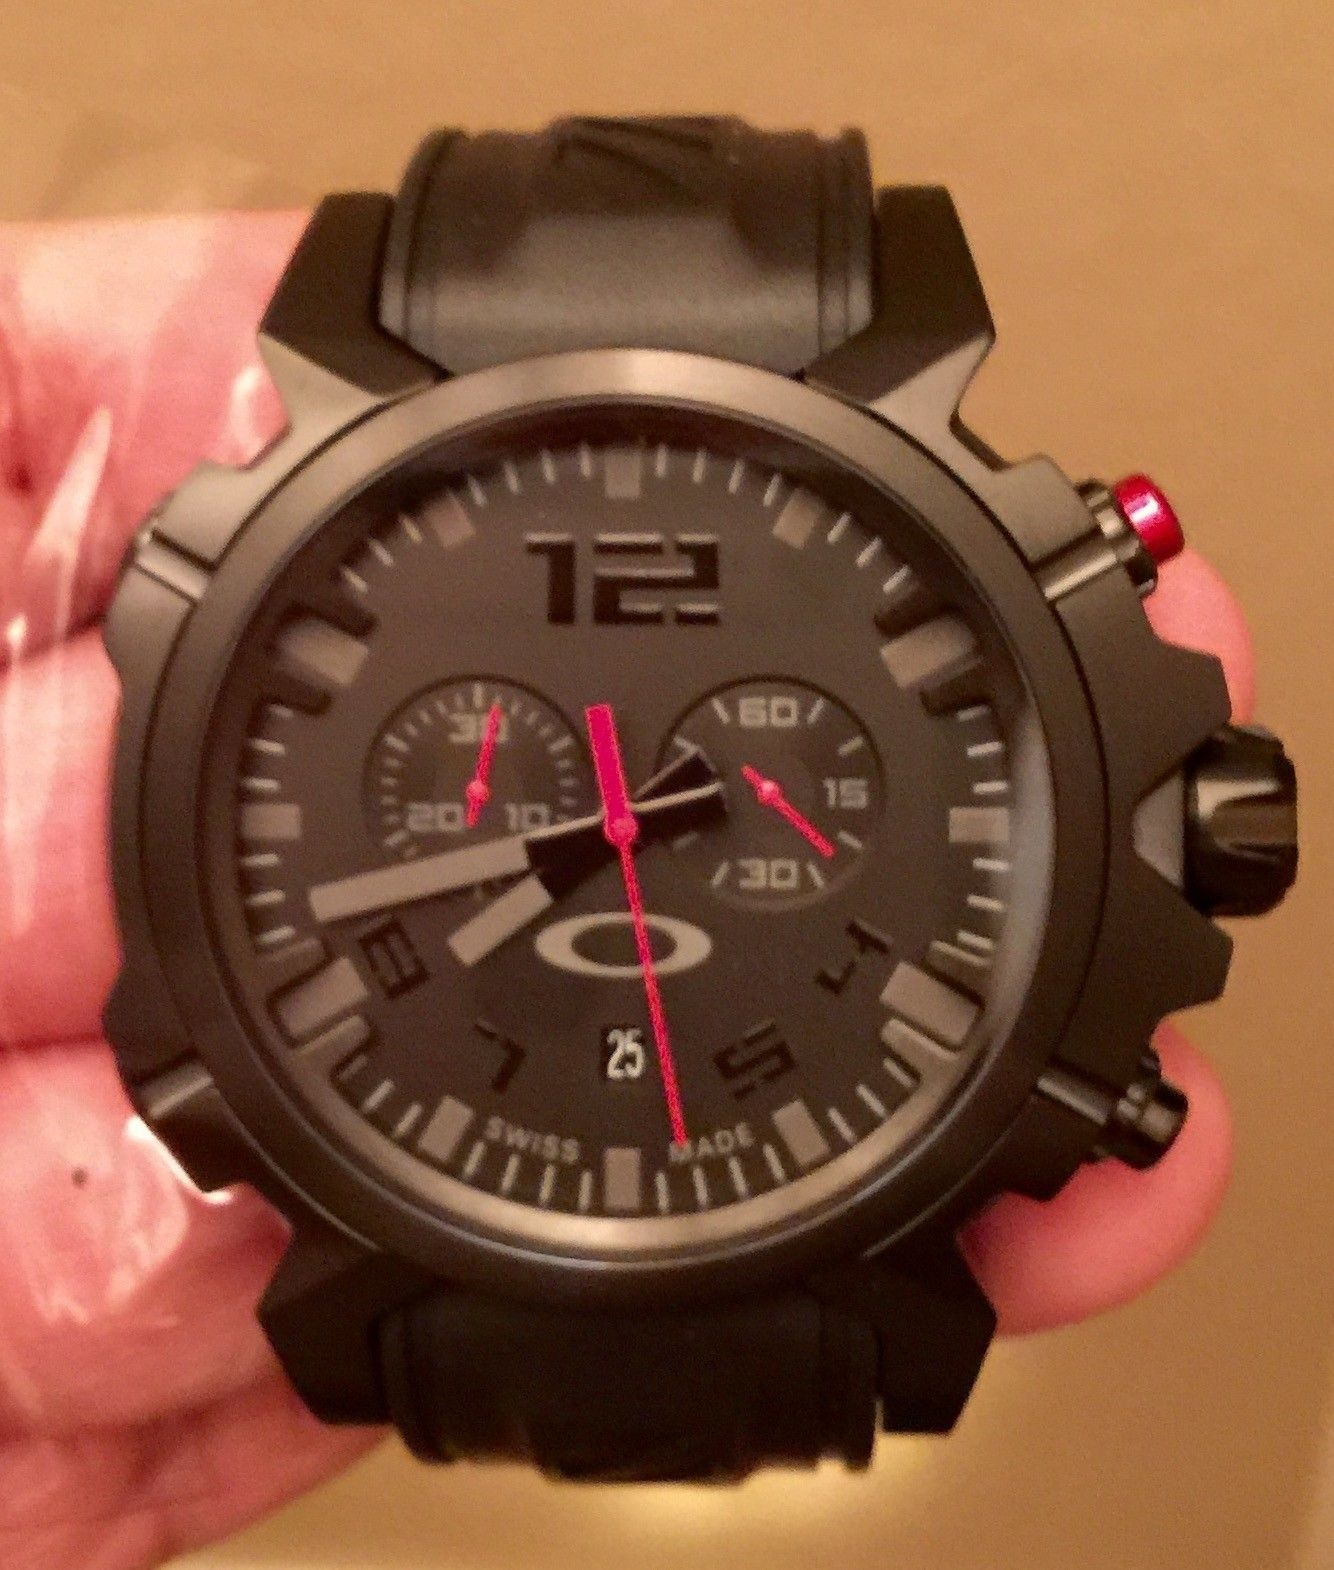 Double Tap Stealth watch. New with tags in box - image.jpeg